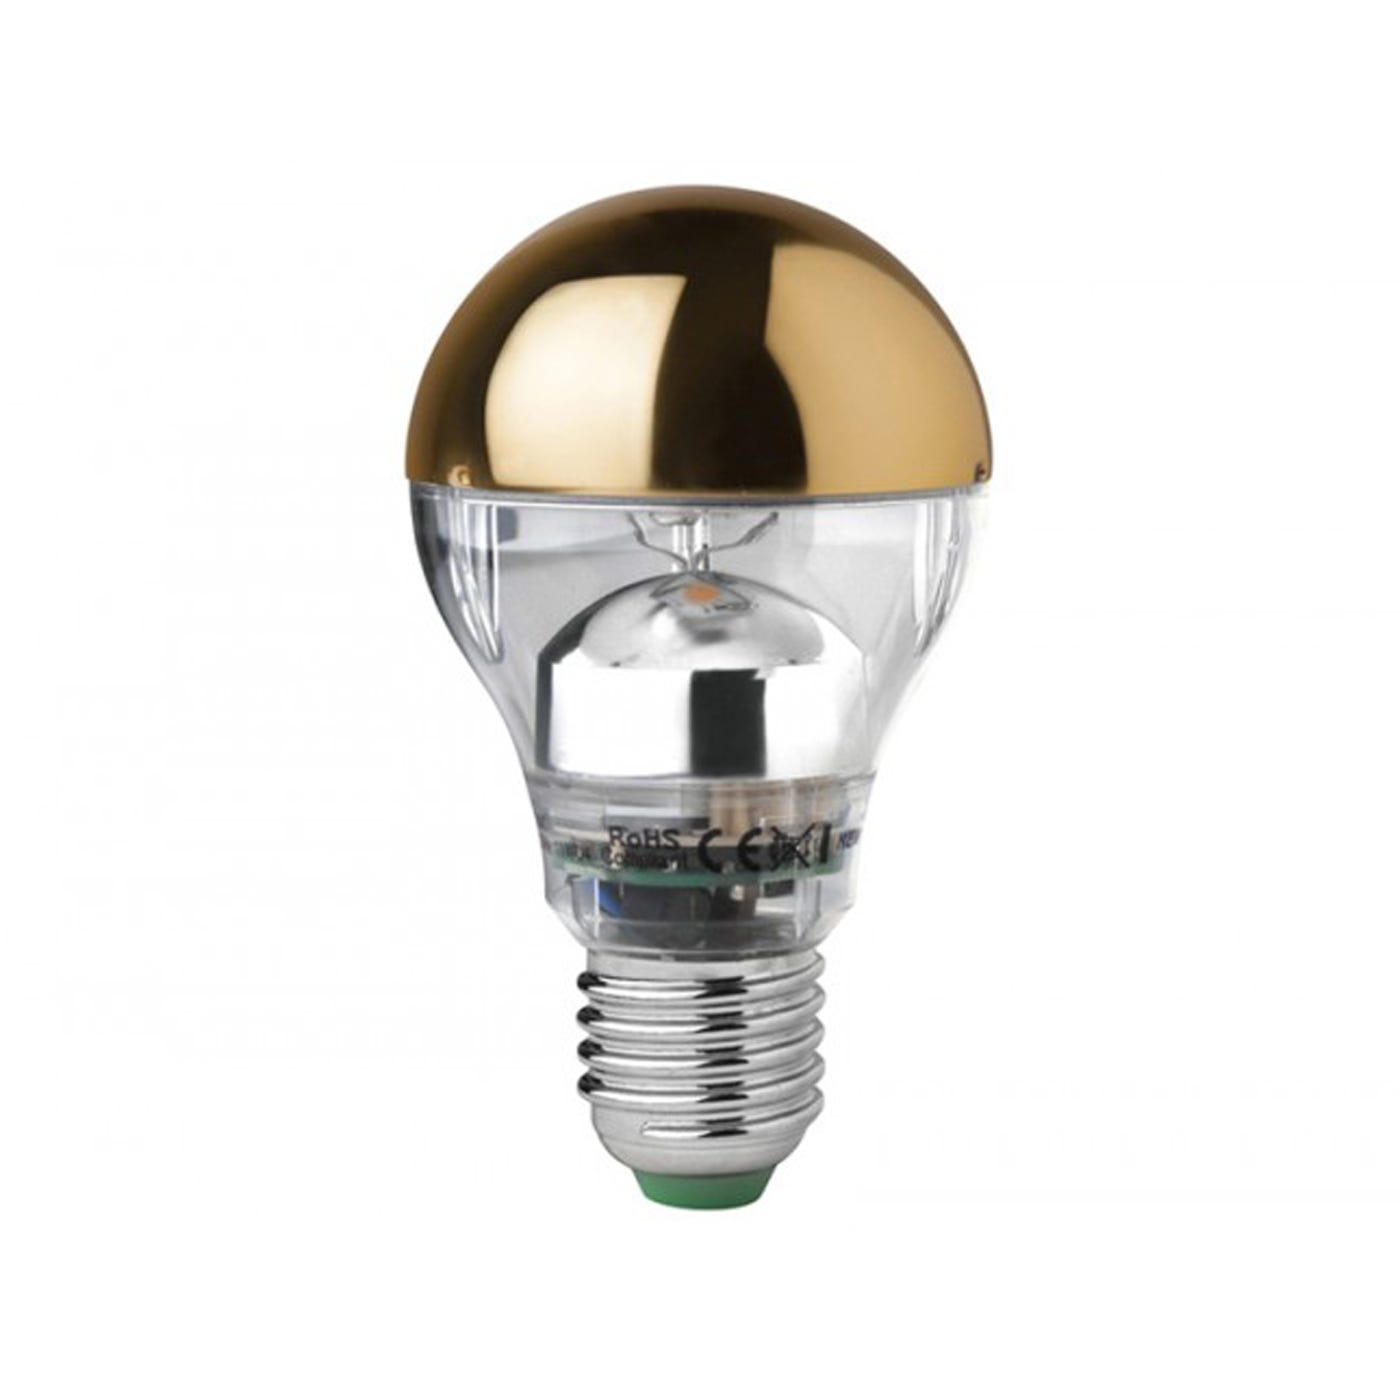 Brass Crowned Bulb E27 7W LED - Discontinued